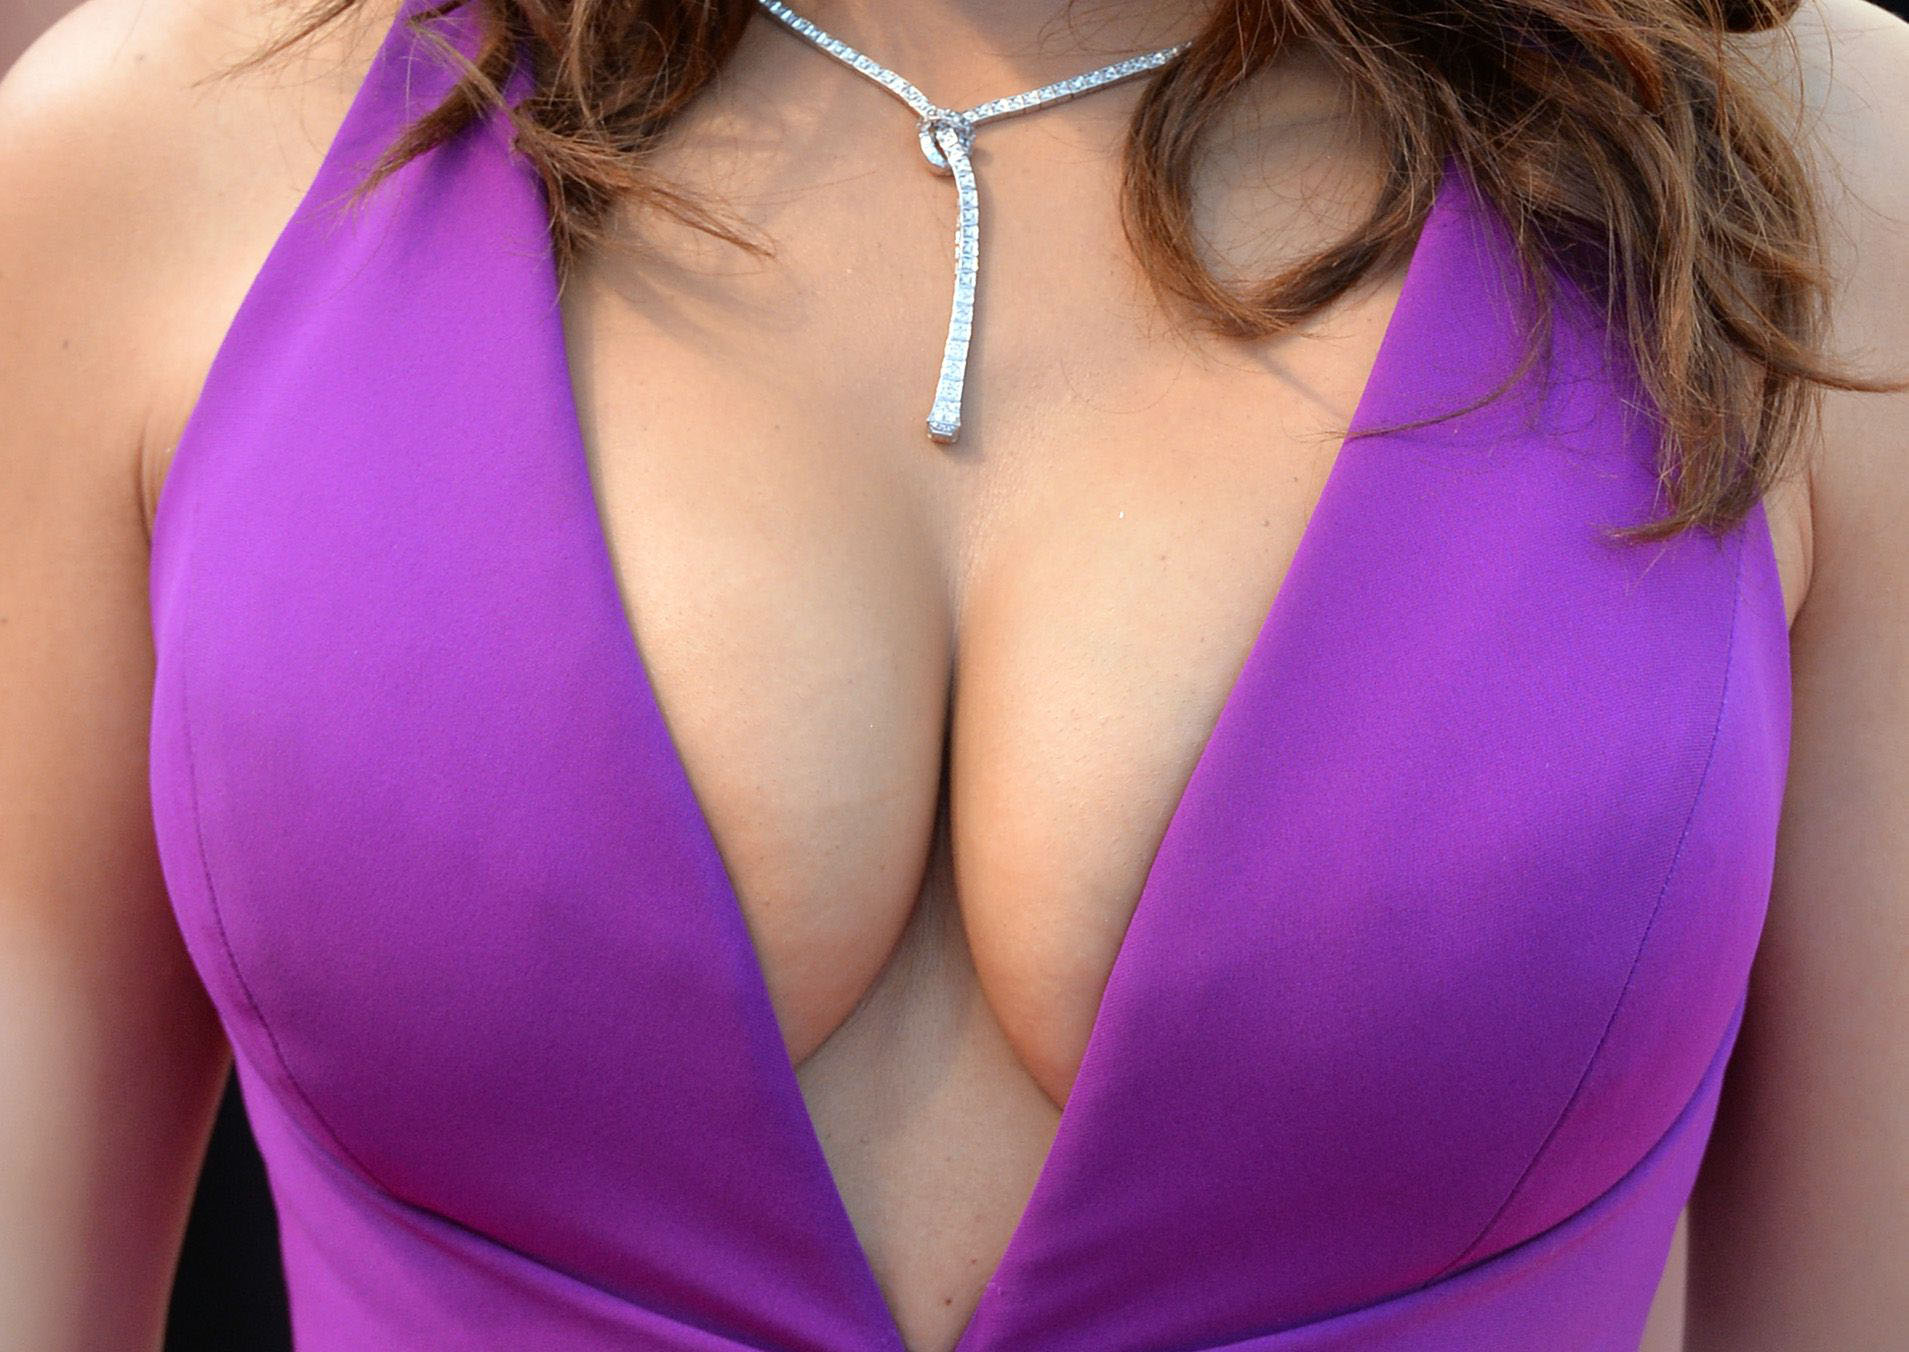 Having huge tits is no picnic, but I'm making my peace with them